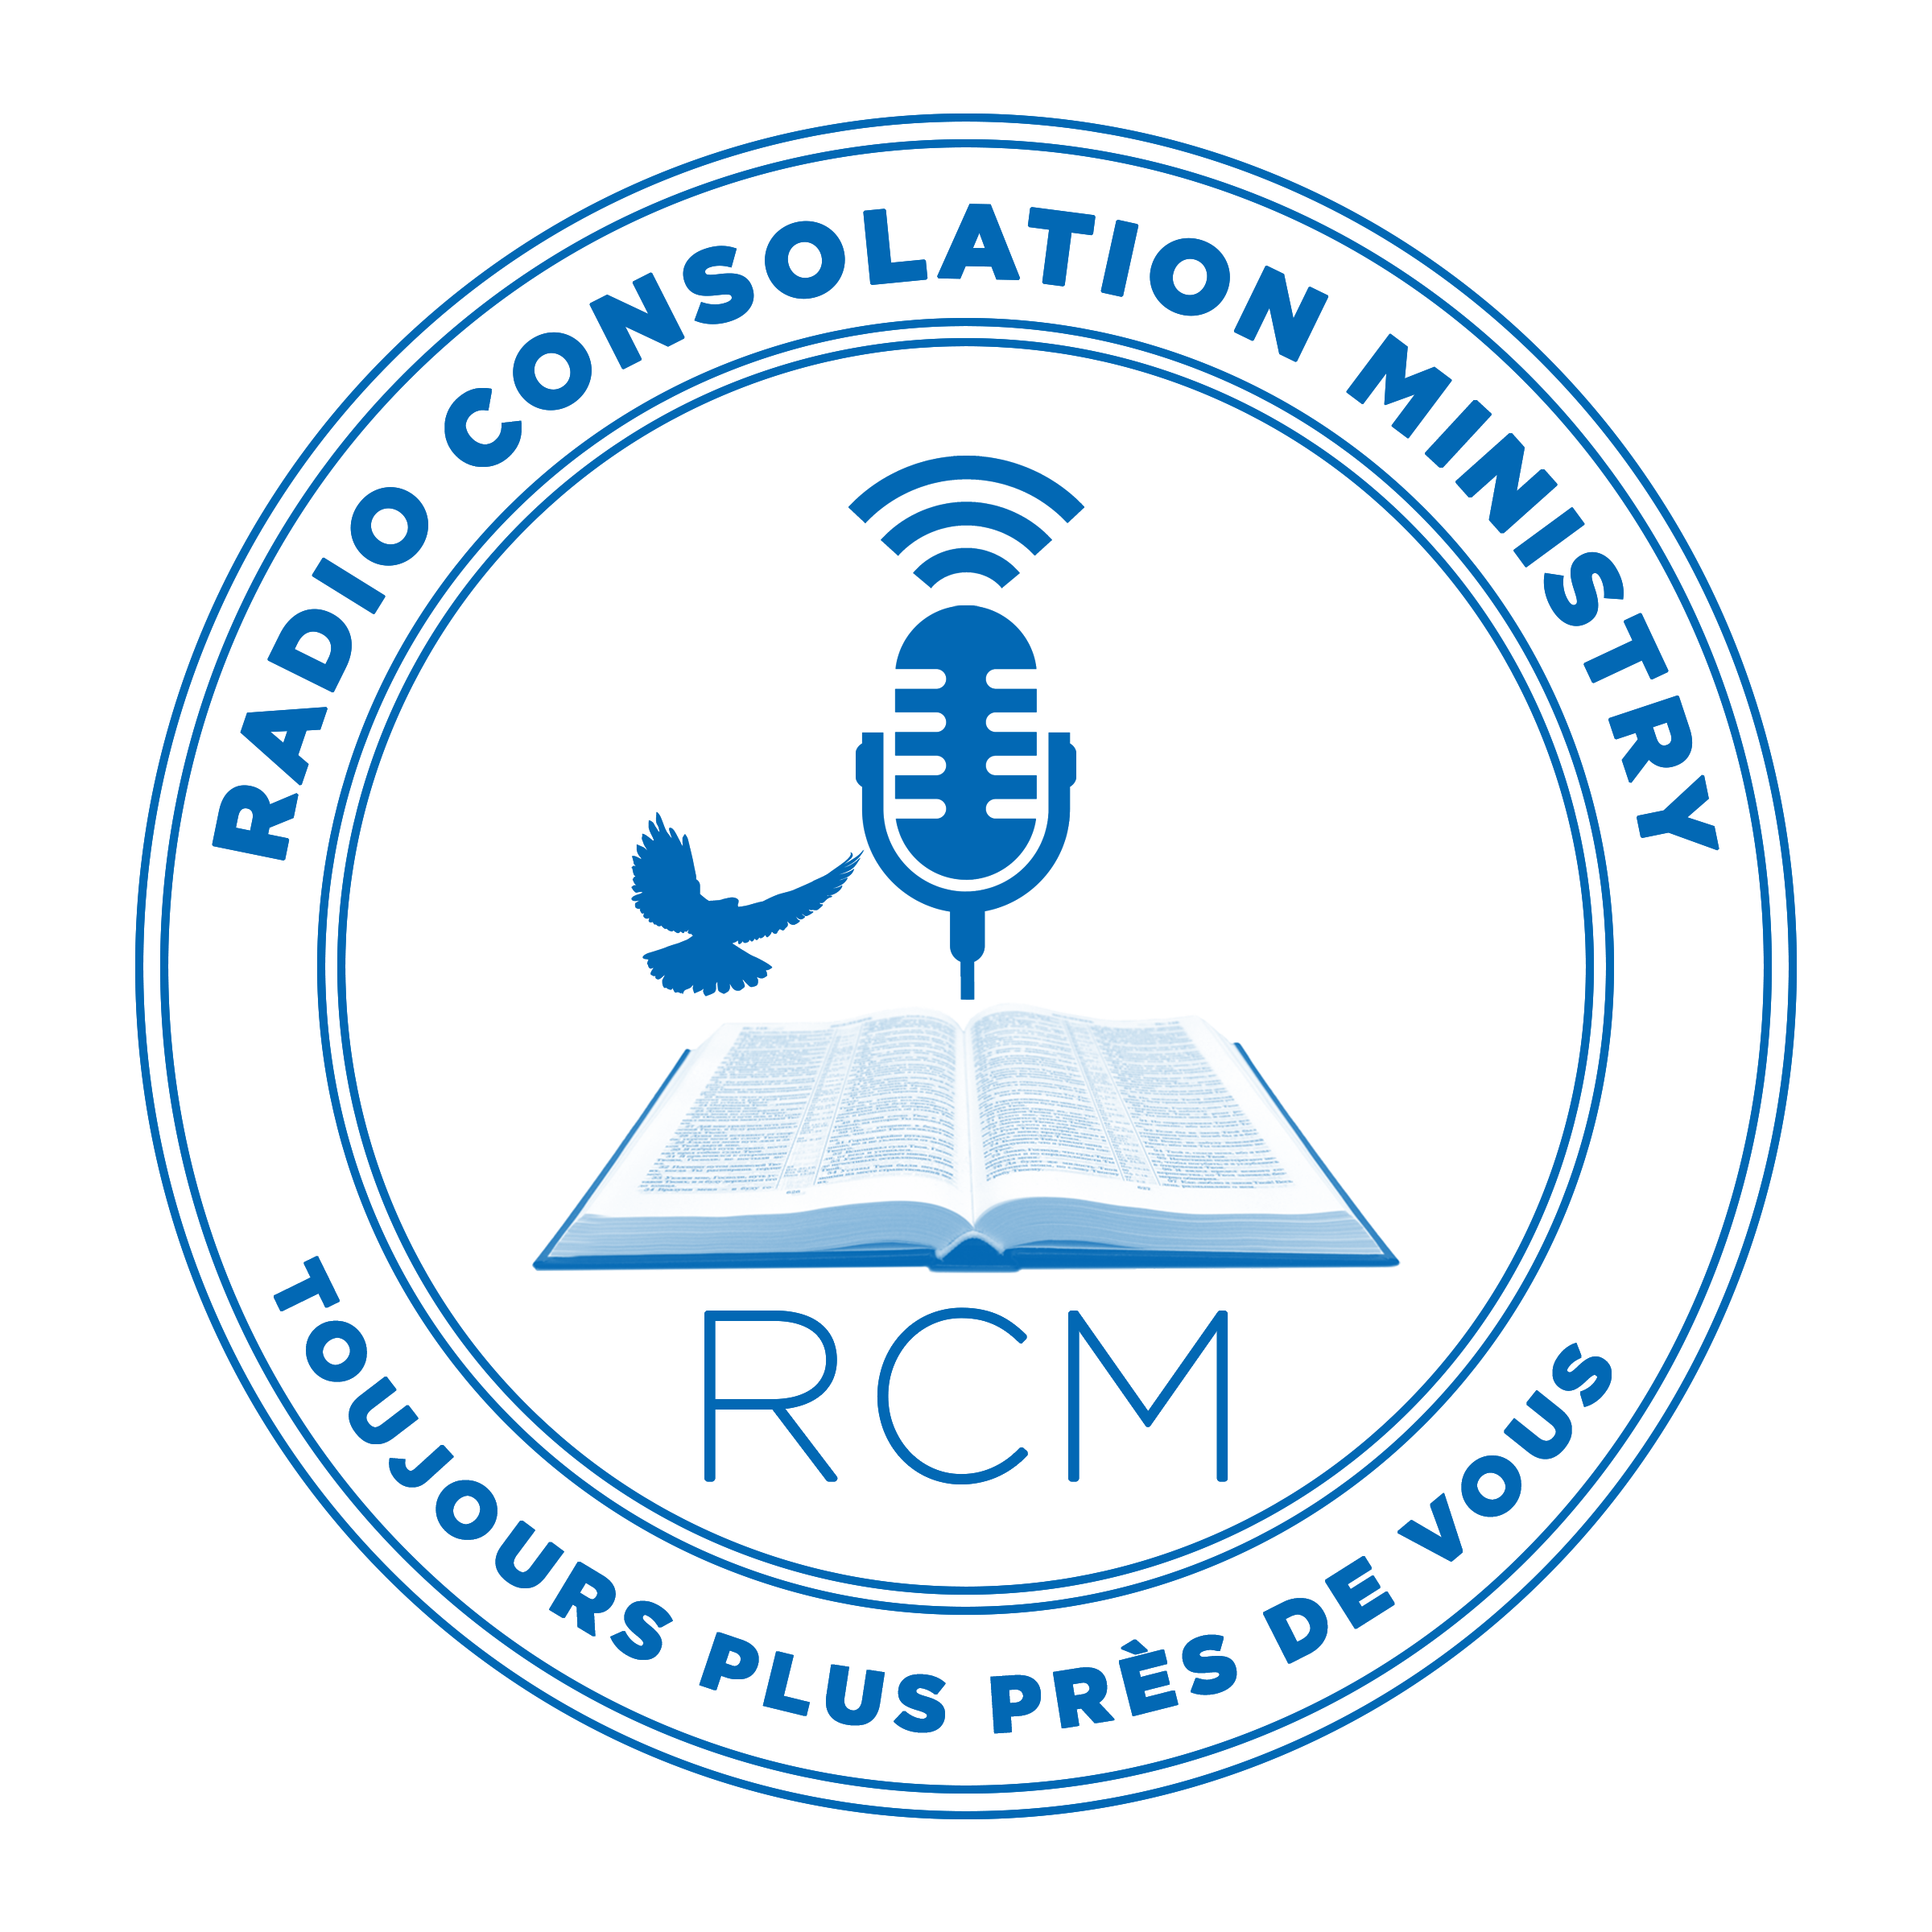 Bienvenue sur le site Officiel de Radio Consolation